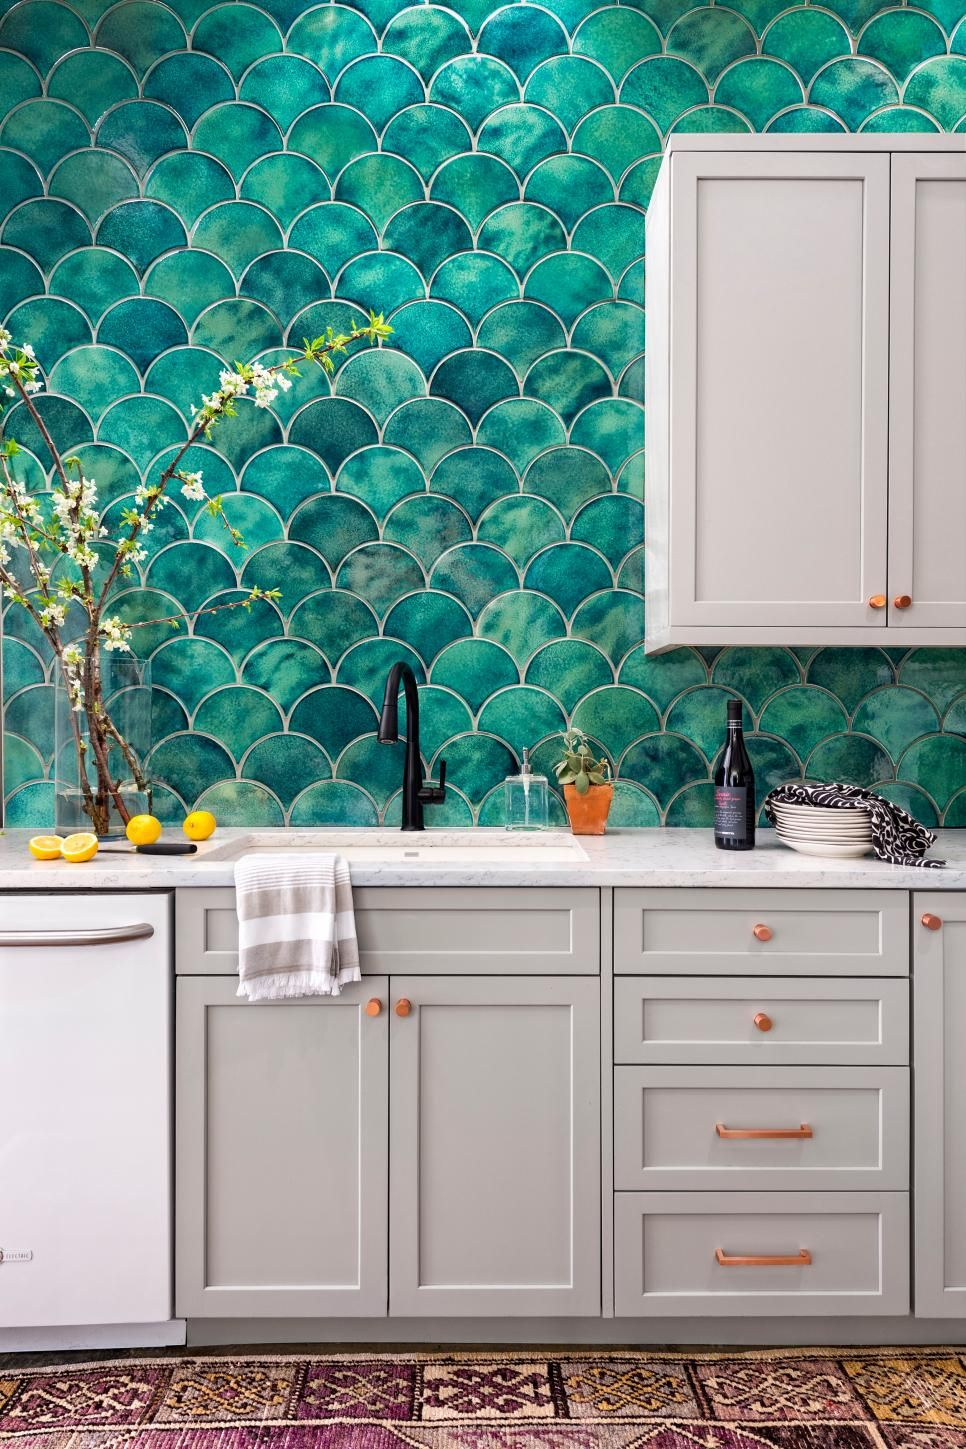 Waddell Urban Kitchen Teal Tile